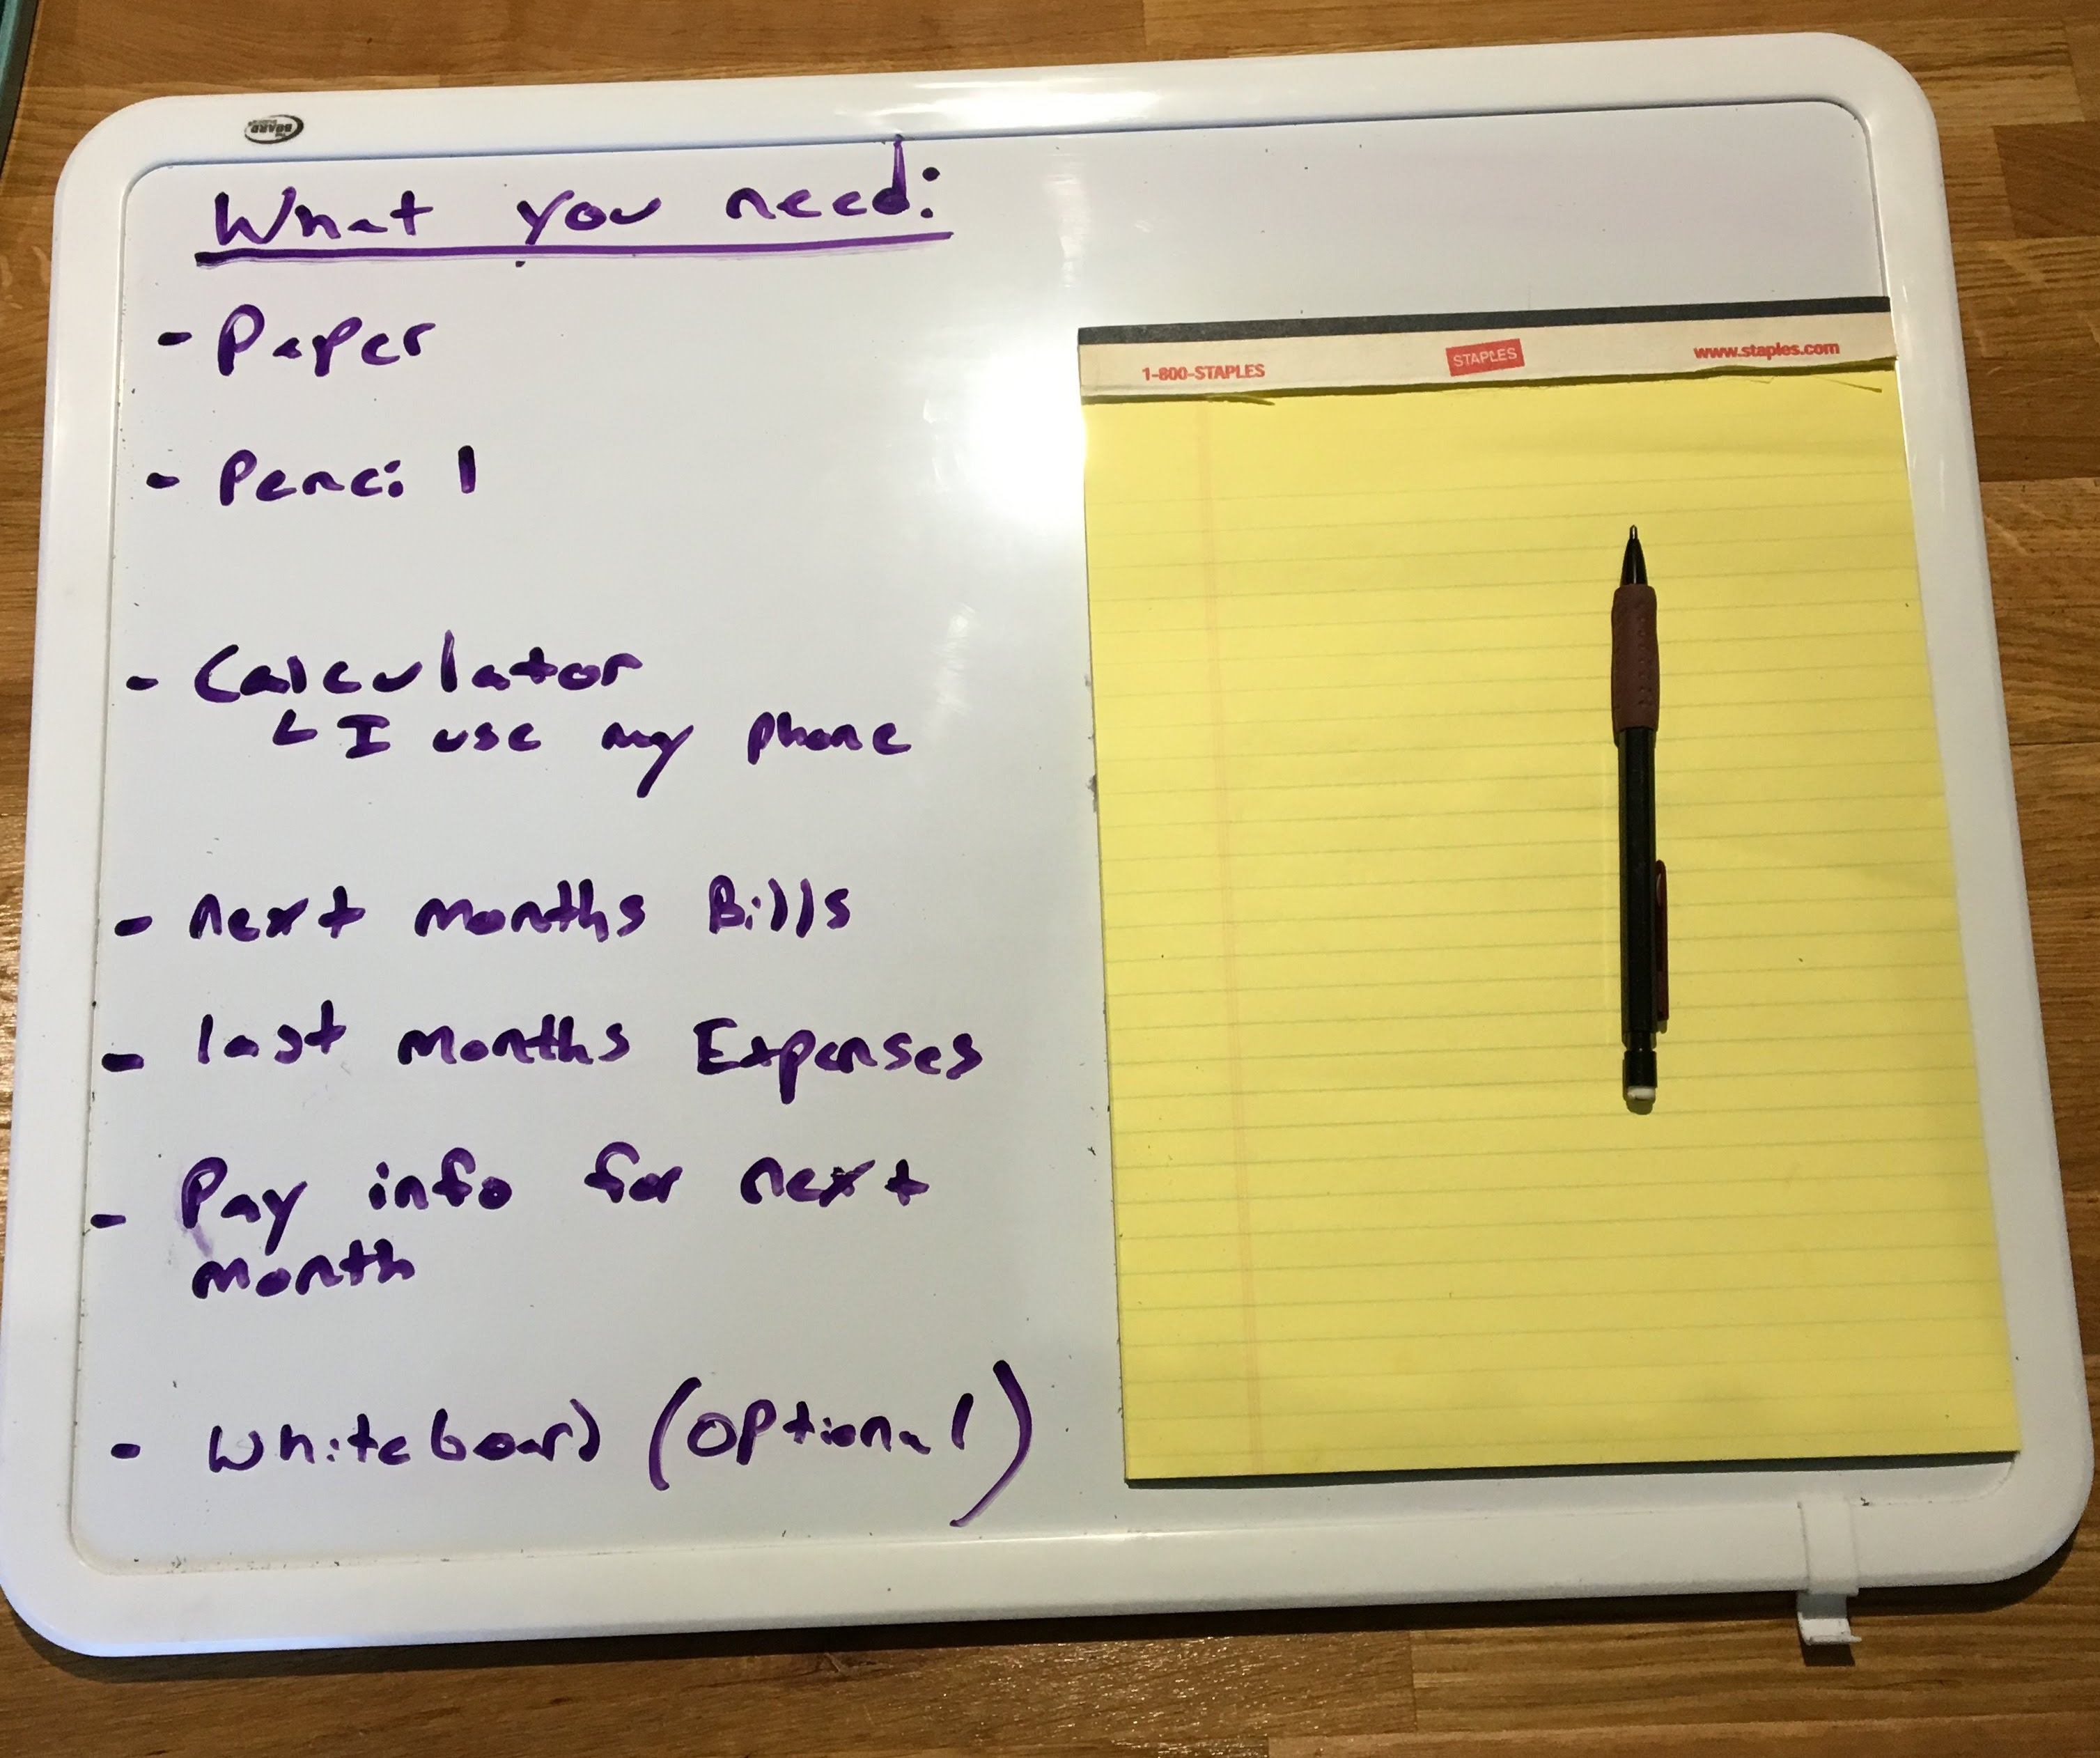 Whiteboard with list